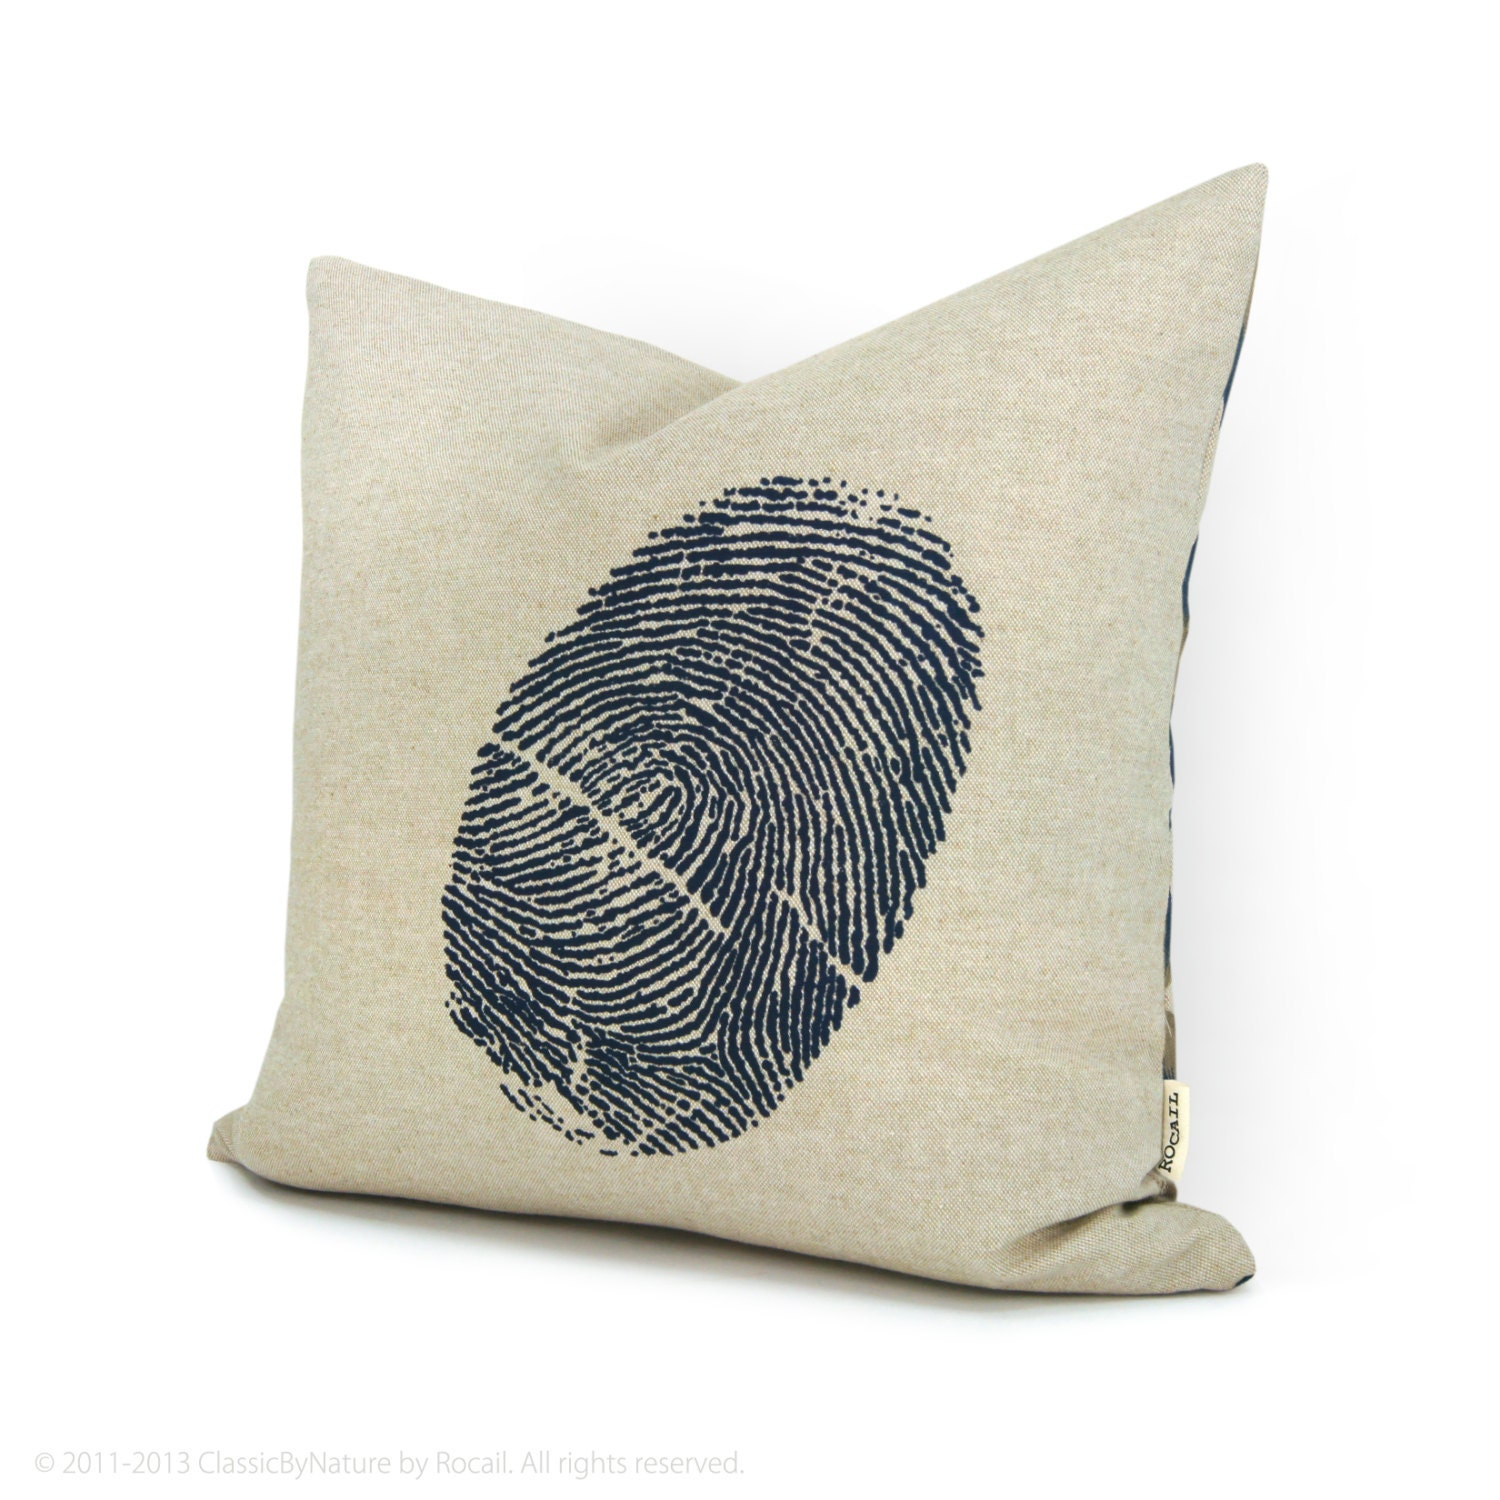 Etsy Navy Throw Pillow : Urban decorative pillow case Navy blue grey beige by RocailStudio